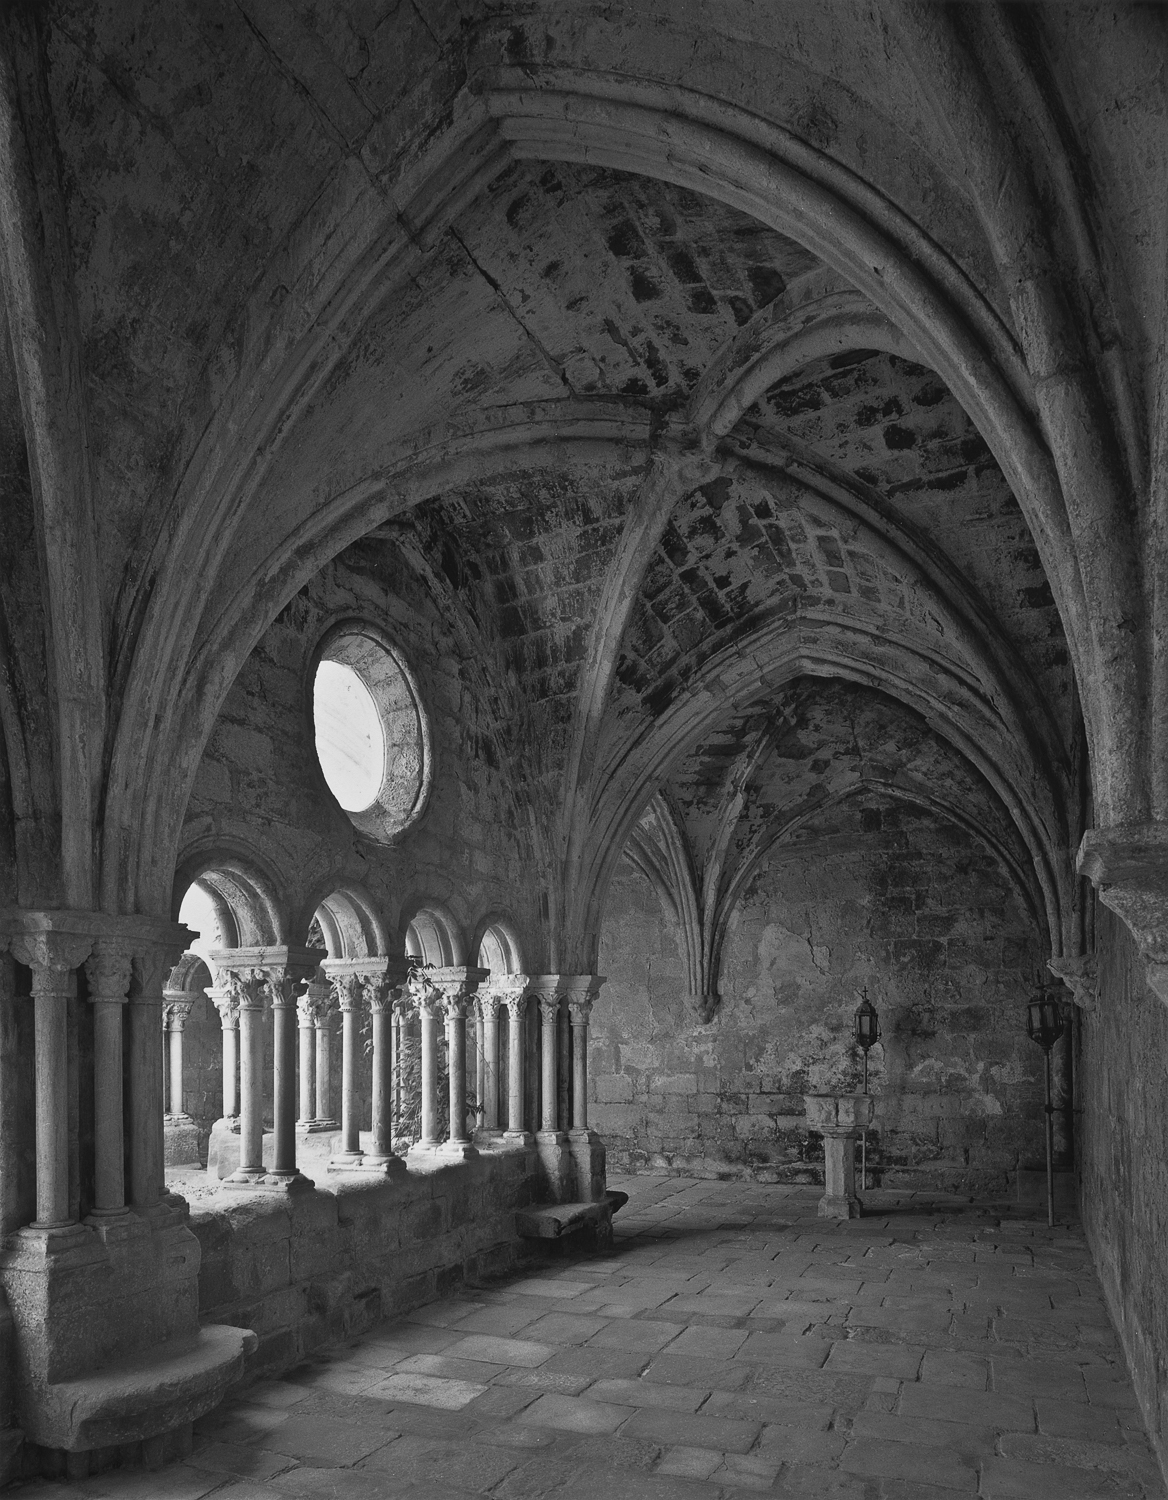 West Cloister Gallery, Fontfroide, 1995